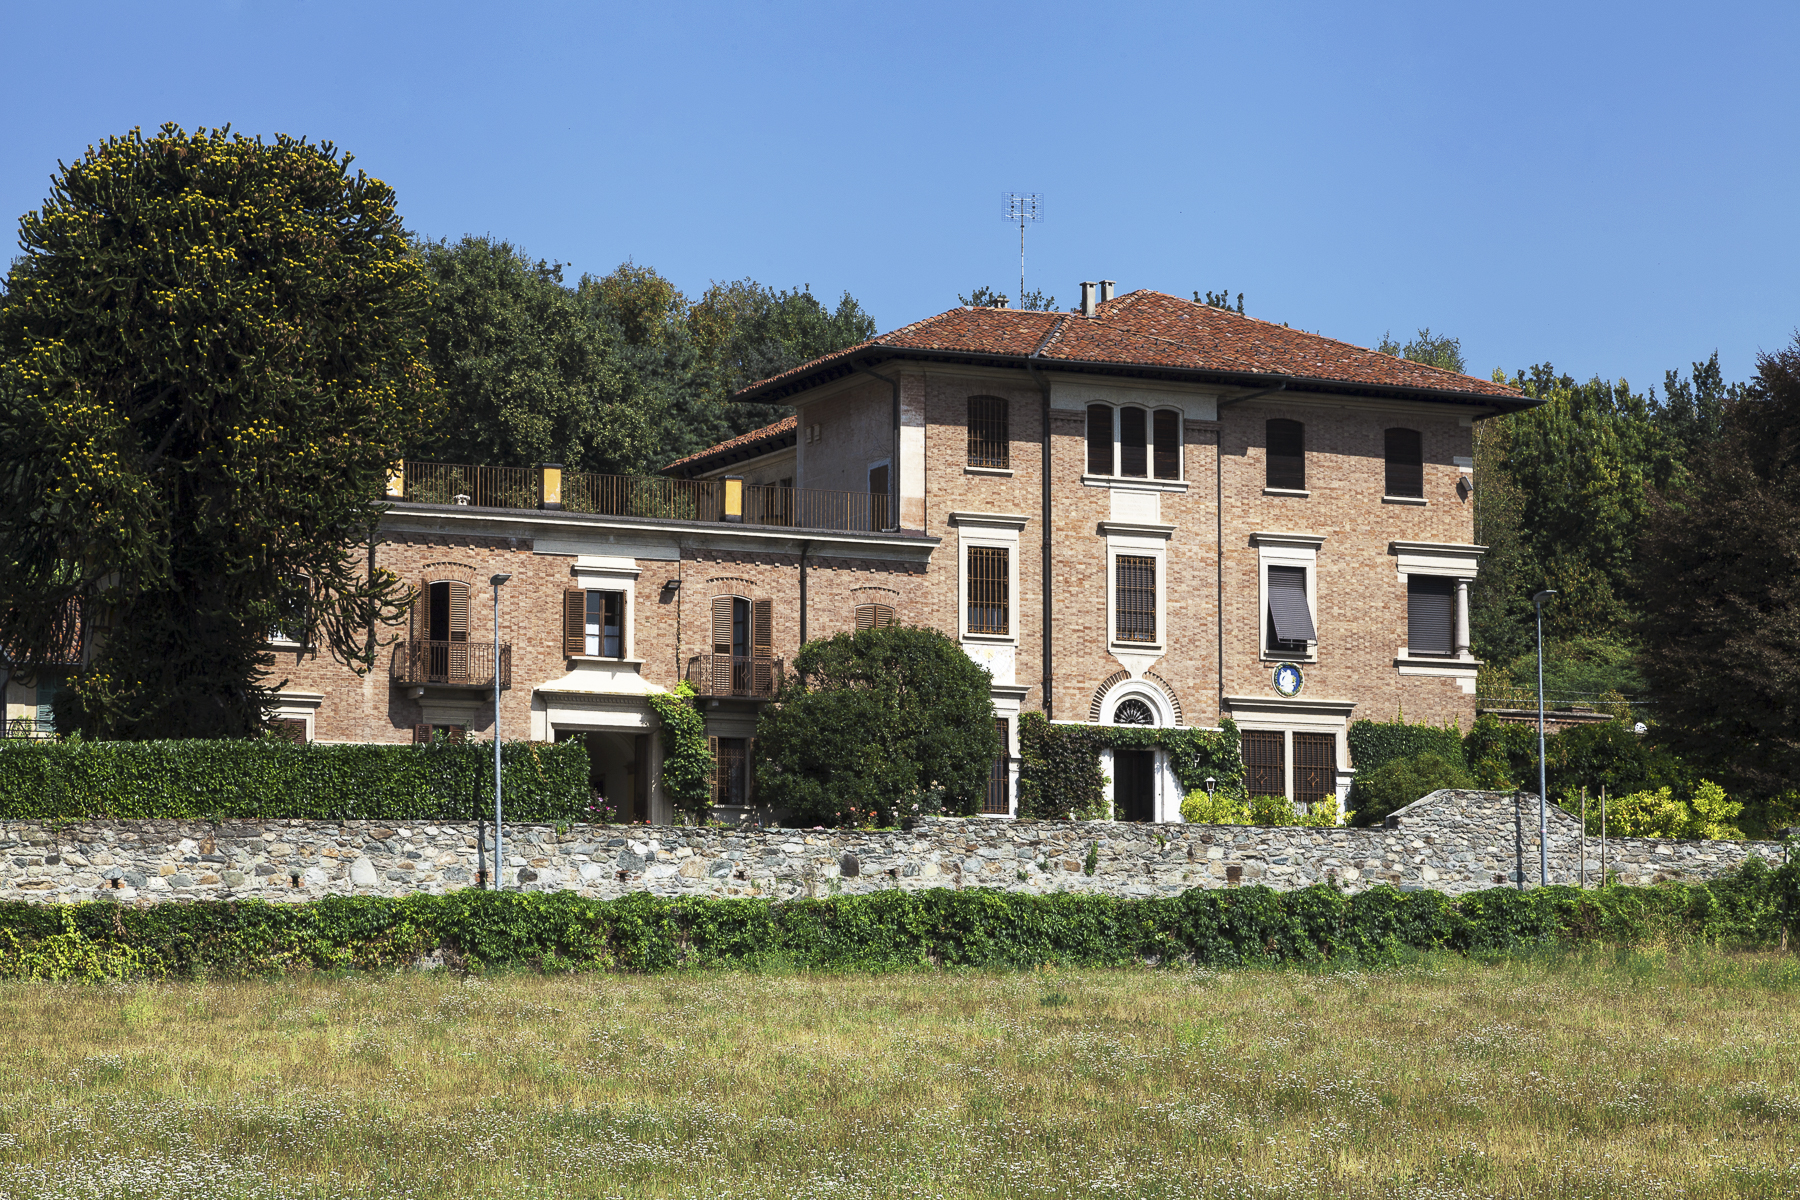 Maison unifamiliale pour l Vente à Unique Villa with swimming pool Piazza Rampone Other Biella, Biella 13883 Italie